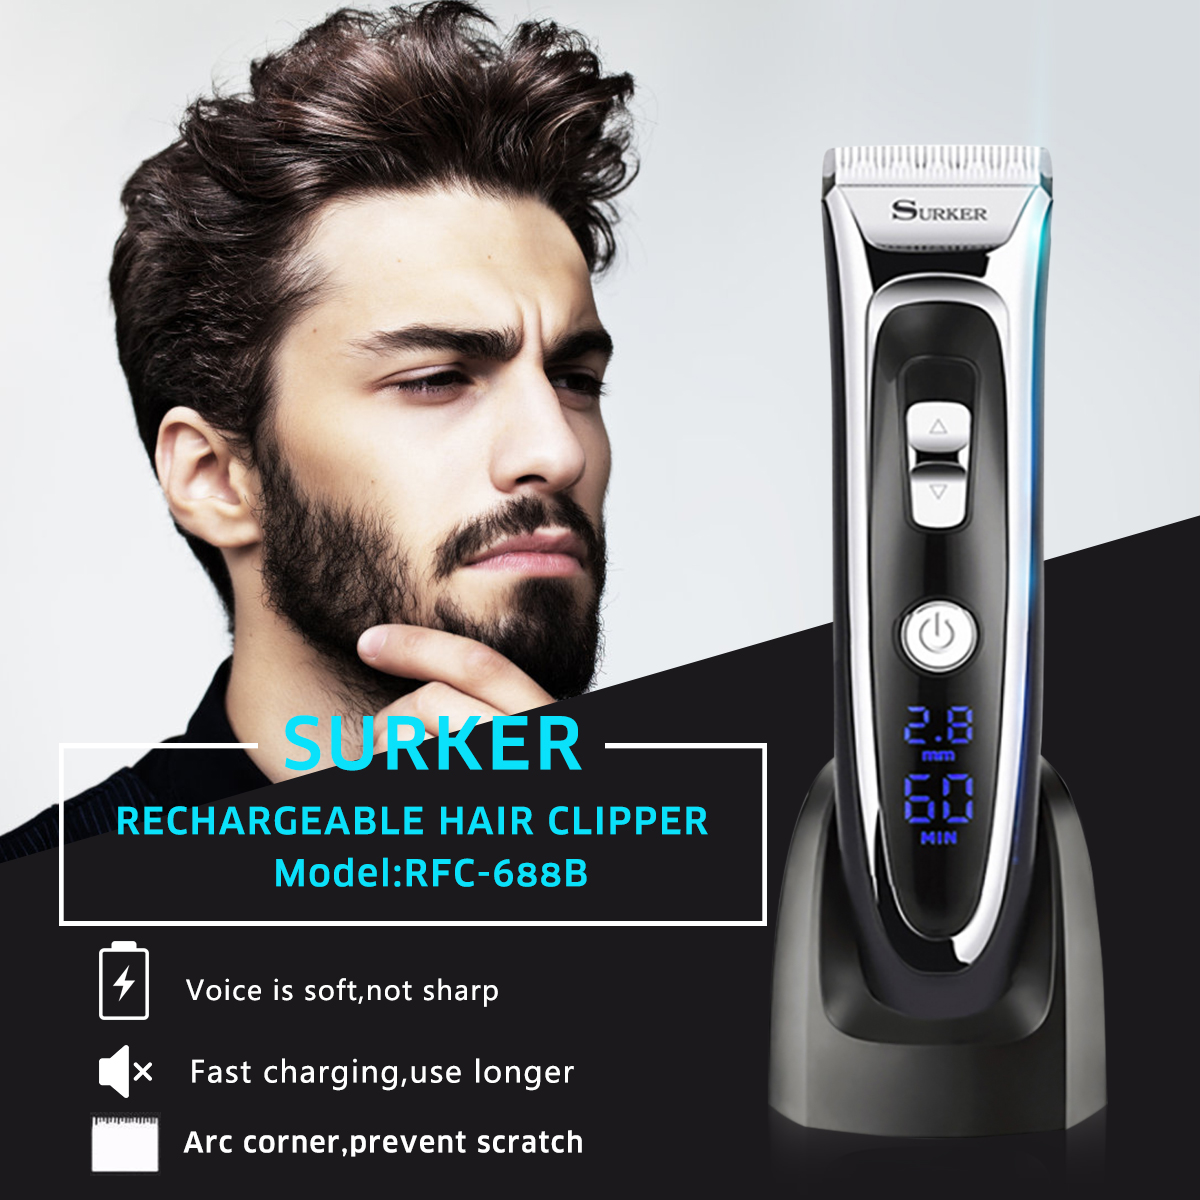 SURKER RFC-688B Rechargeable Hair Clipper Hair Trimmer With LED Display Silent Ceramic Knife Fast Charge Haircut Machine EU Plug